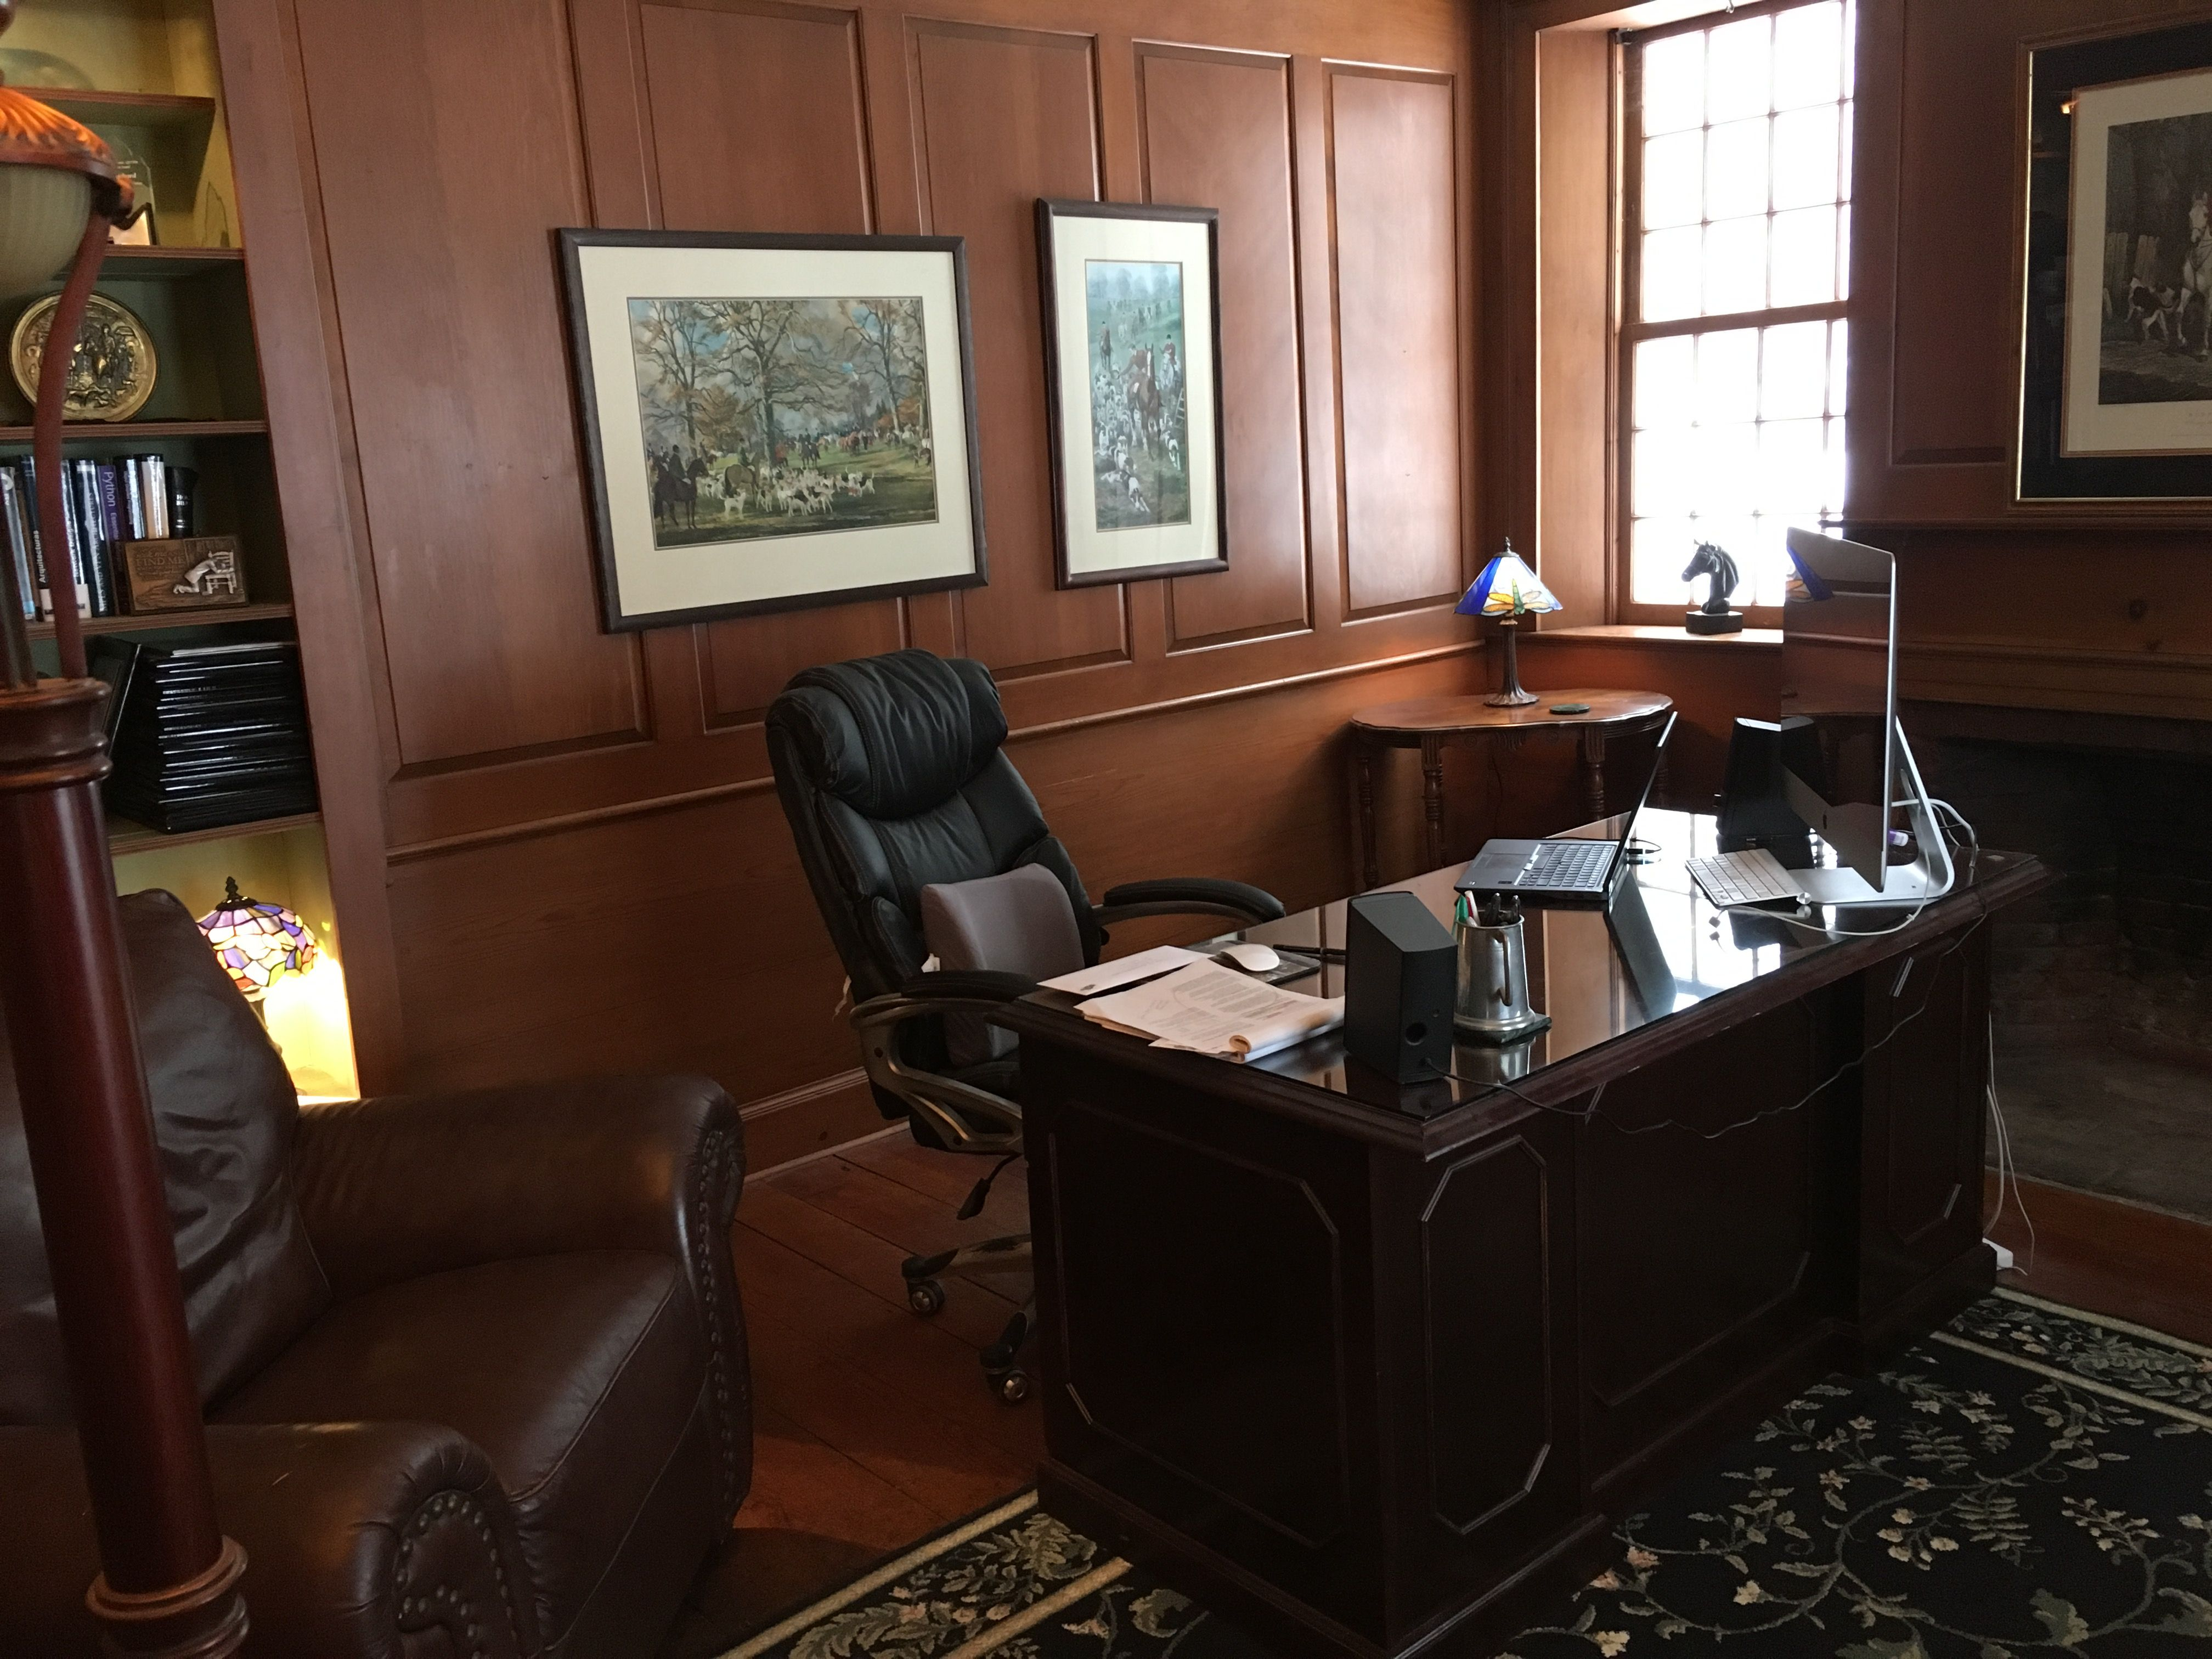 Office, study, executive desk, wood stain panel, fireplace, old ...